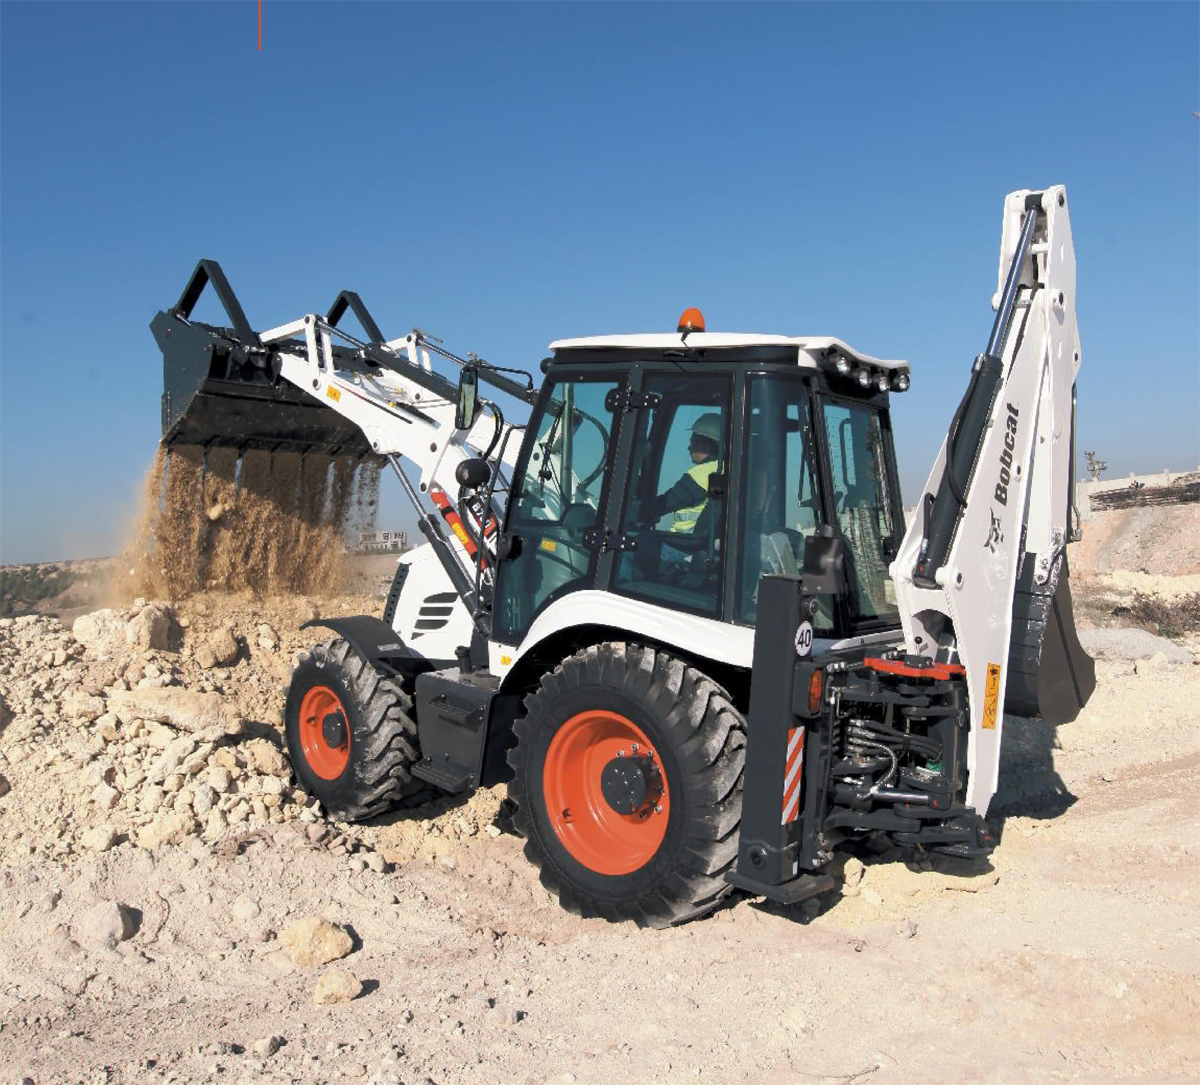 Bobcat Equipment Archives - Forklift Truck OFS